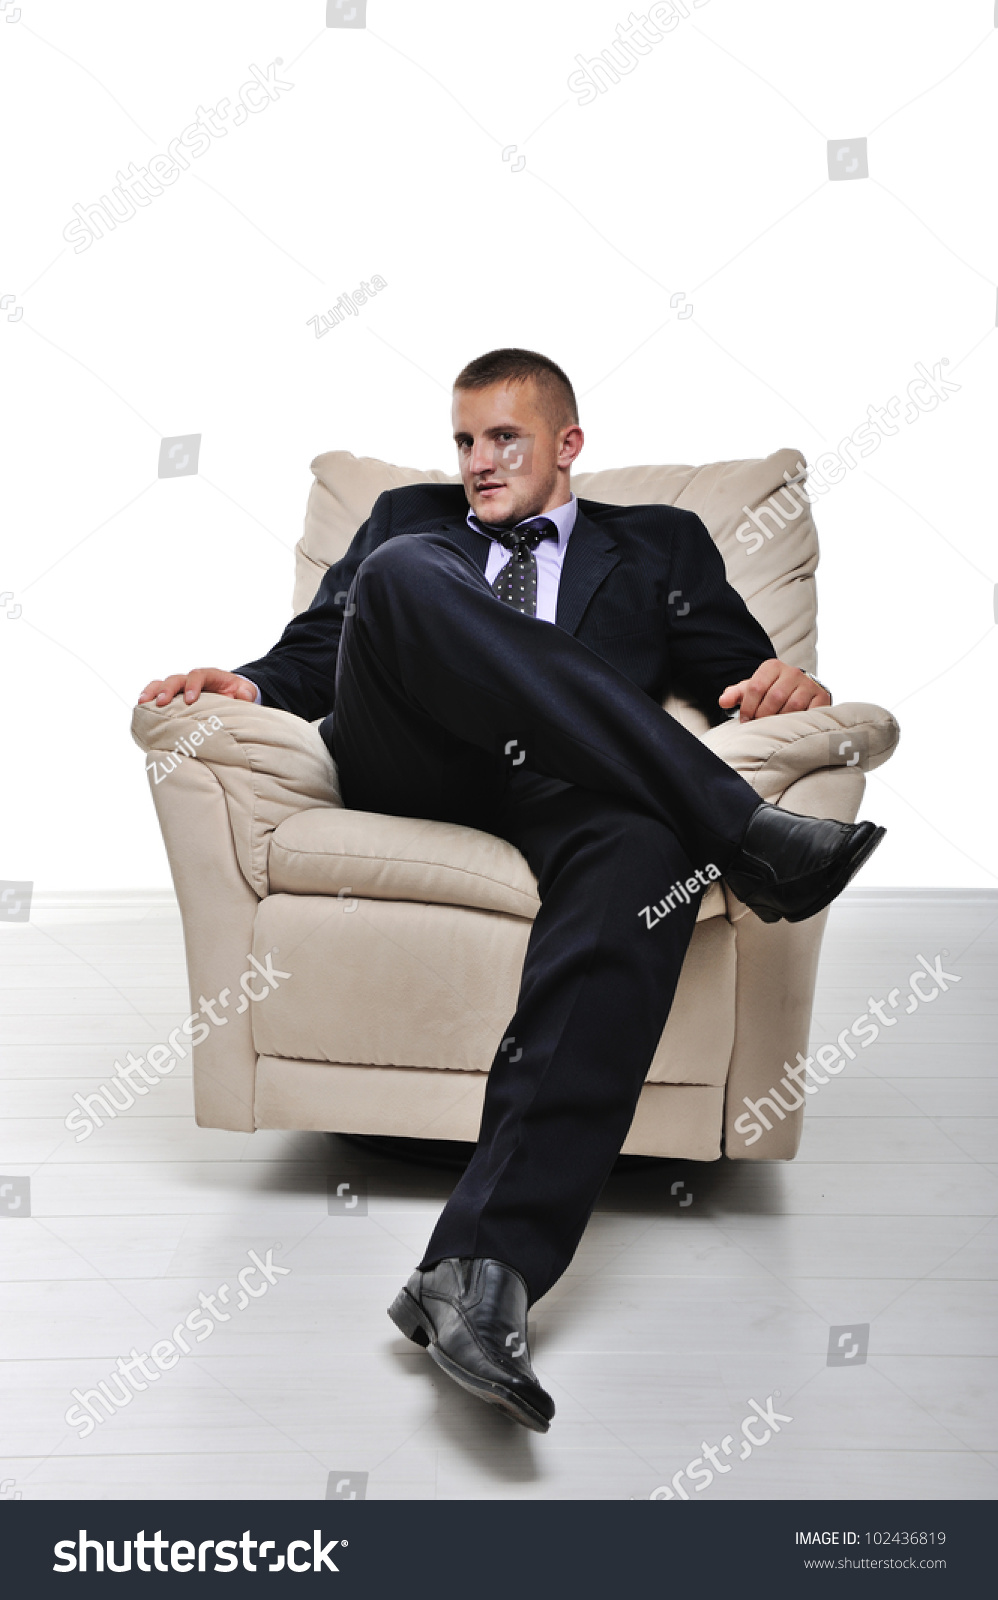 Businessman sitting armchair legs crossed isolated stock for Sitting in armchair